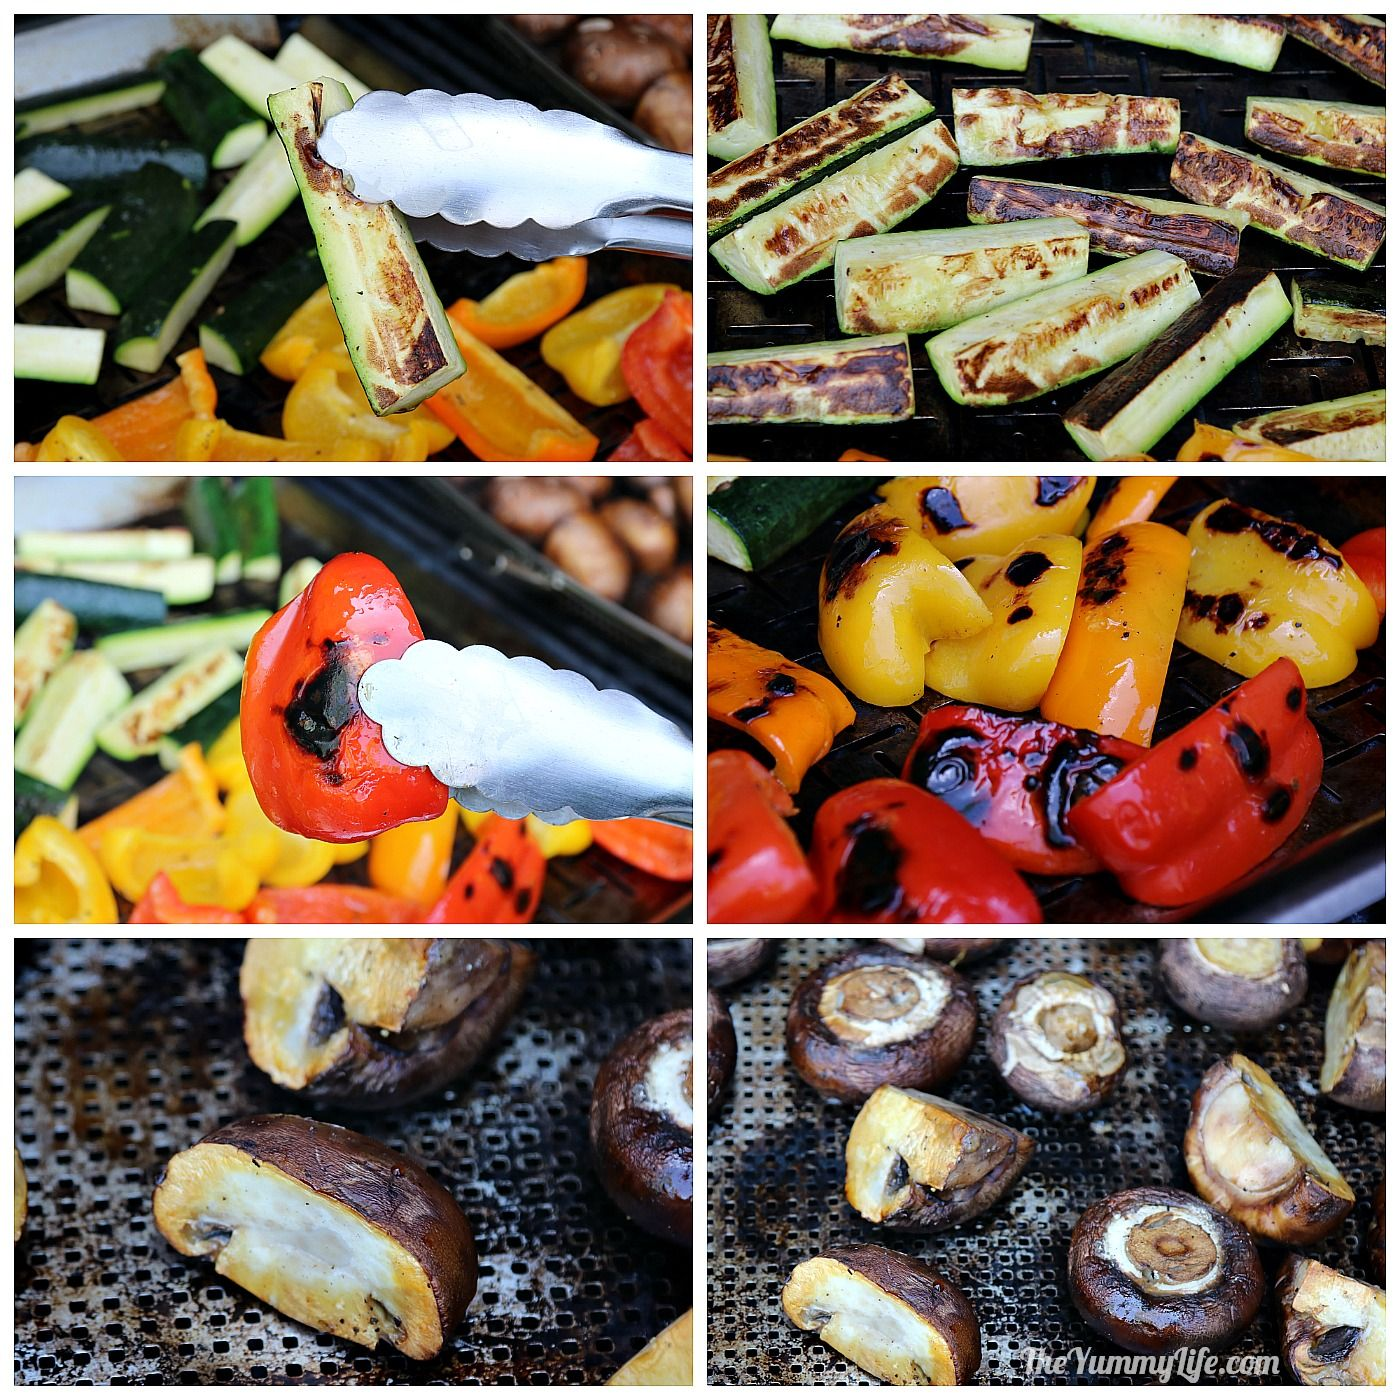 collage_grilled_veggies_resizetm.jpg